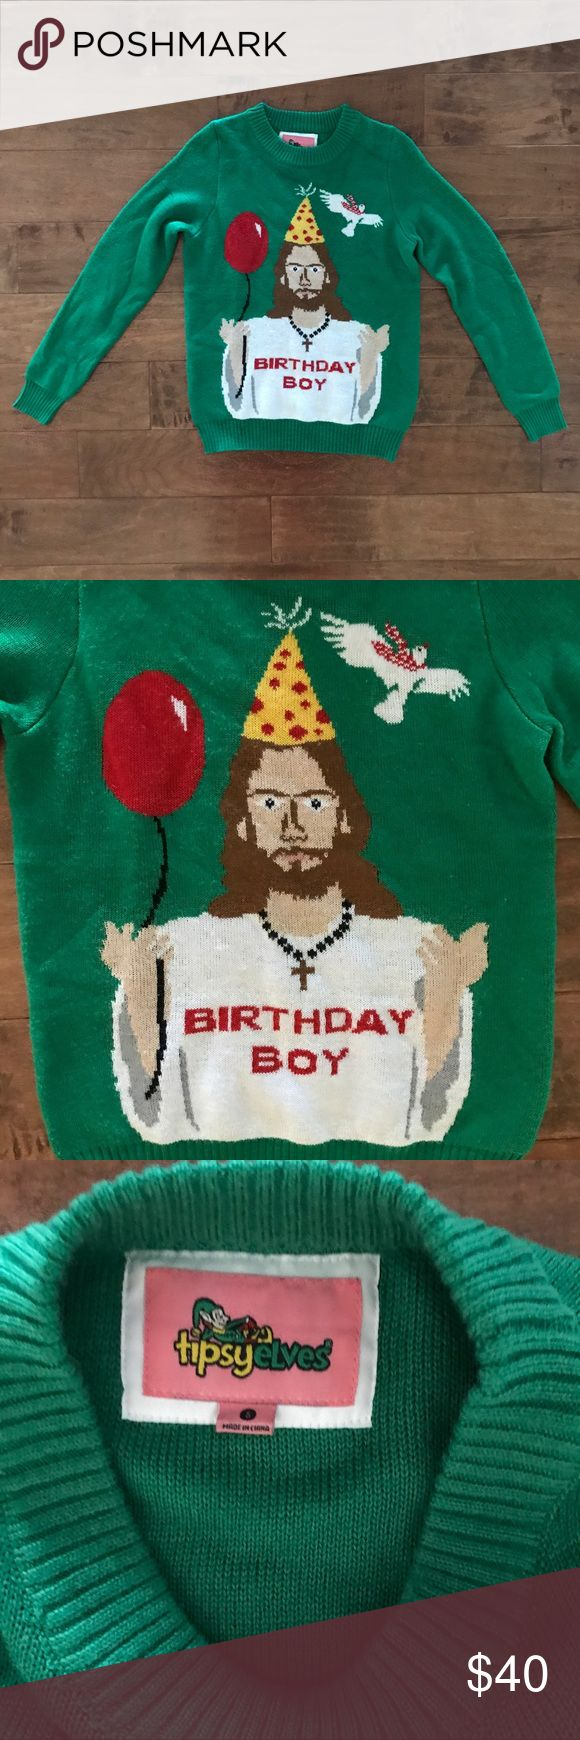 "Tipsy Elves Ugly Christmas Sweater Birthday Boy Excellent, preowned condition. Ladies size small. Green with Jesus and ""Birthday Boy"". Tipsy Elves Sweaters"